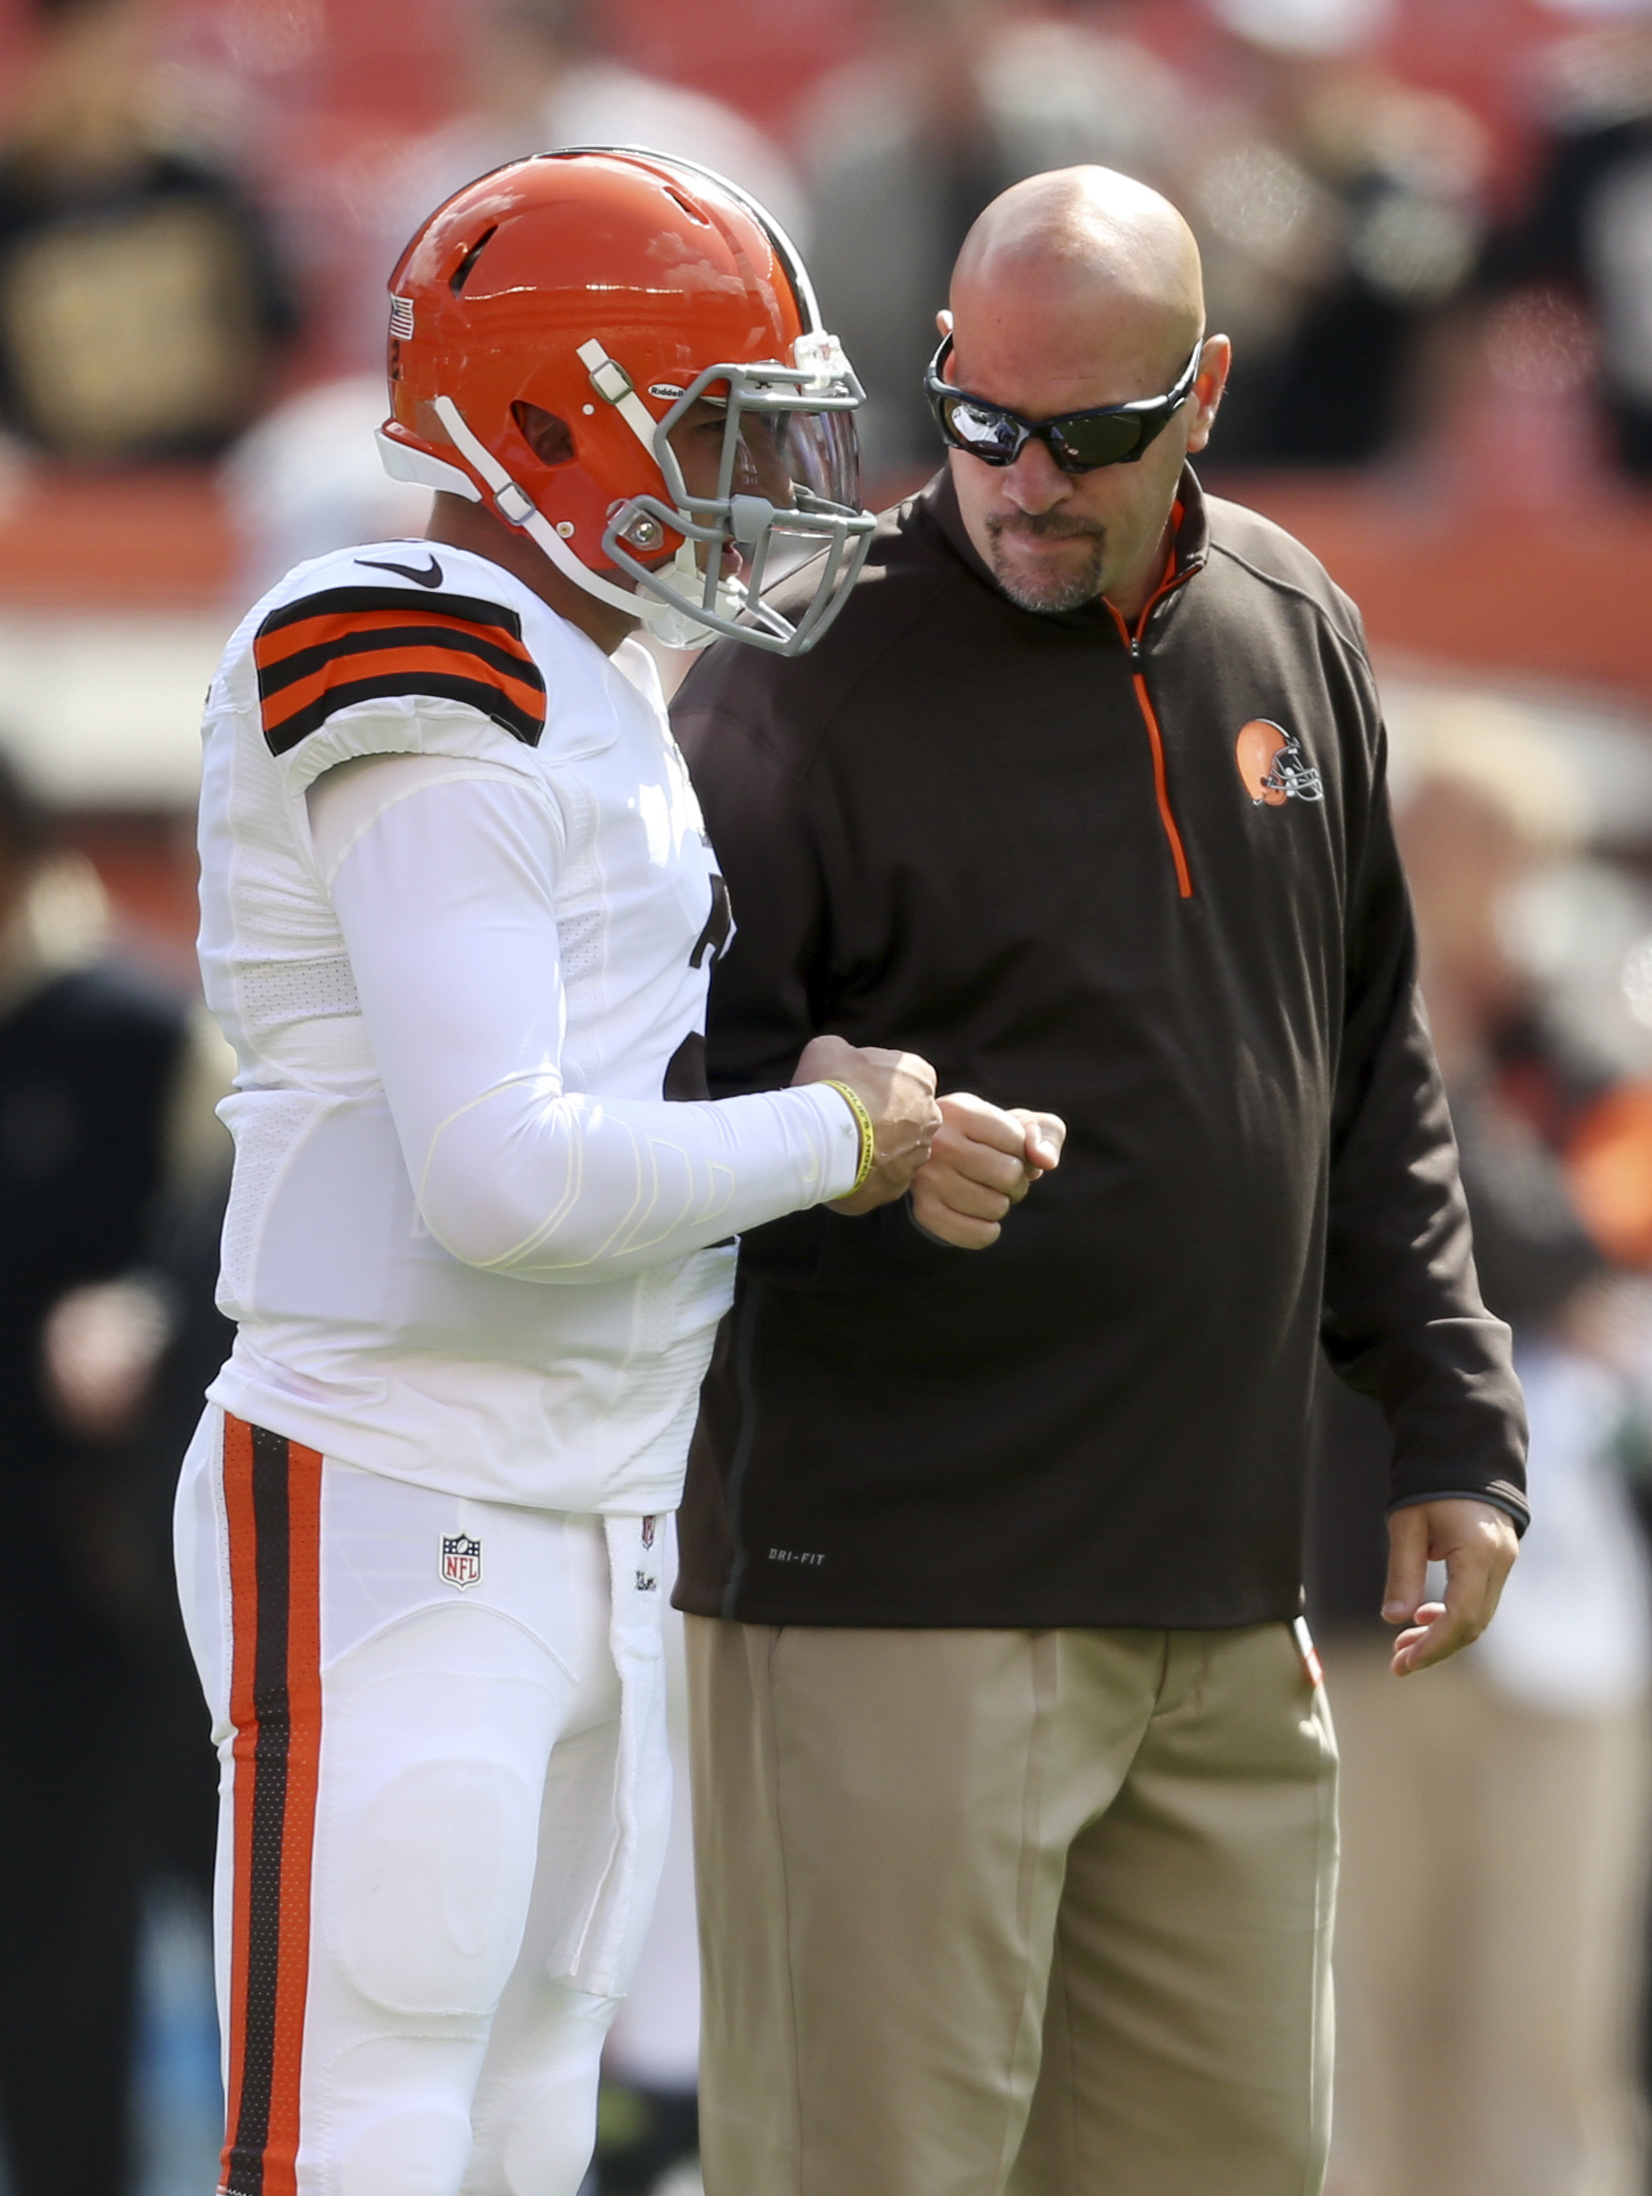 Mike Pettine confident Johnny Manziel will be better in 2015